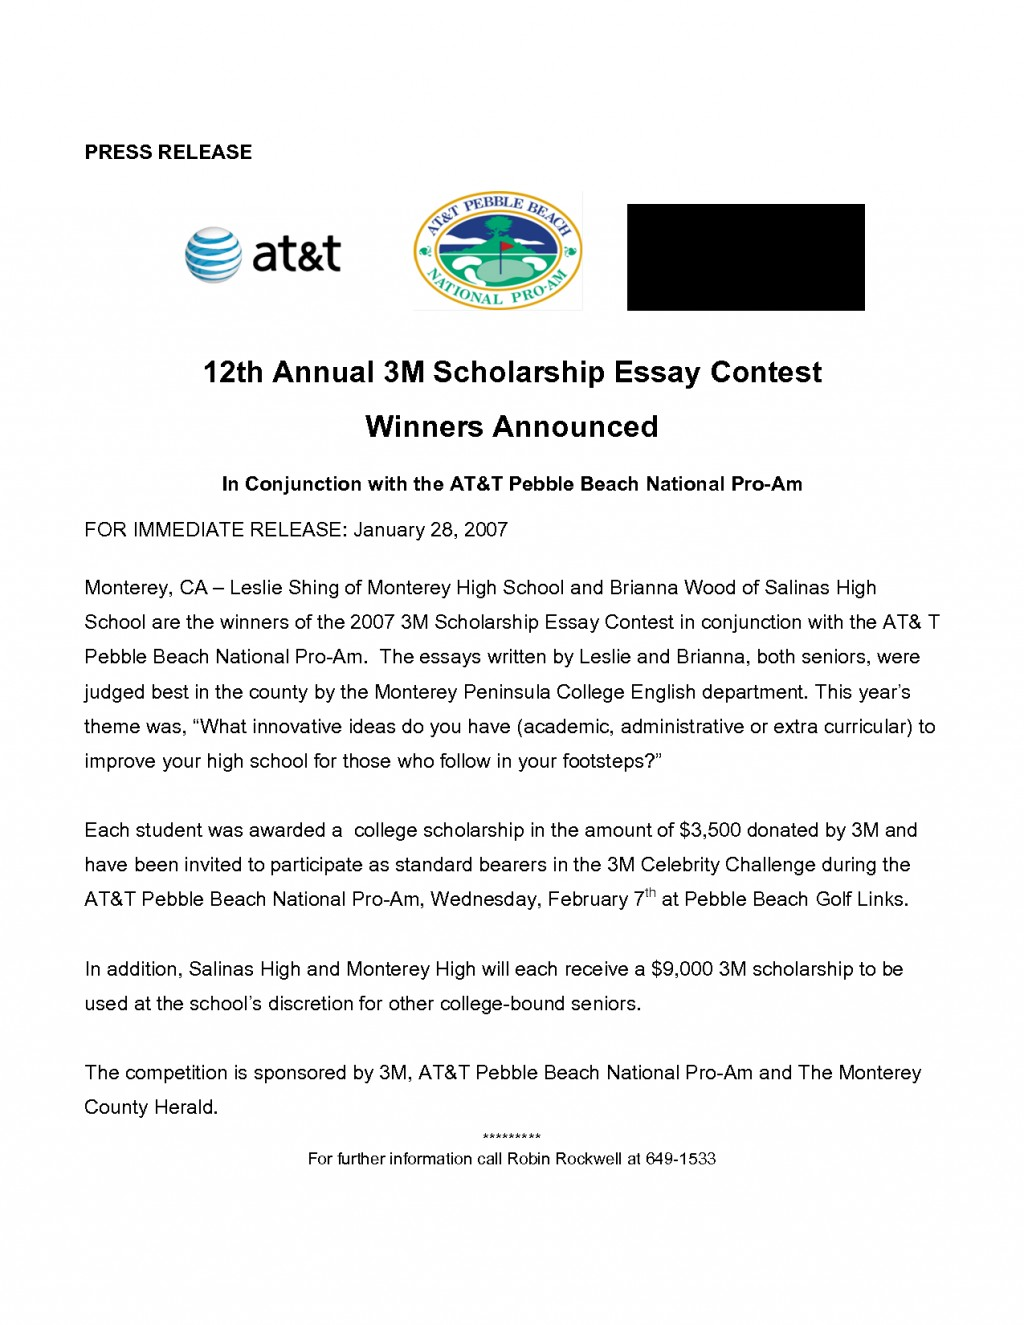 002 Essay Scholarships For High School Students Example Scholarship Application Help Contests Juniors 3 No Incredible Essays Examples Large